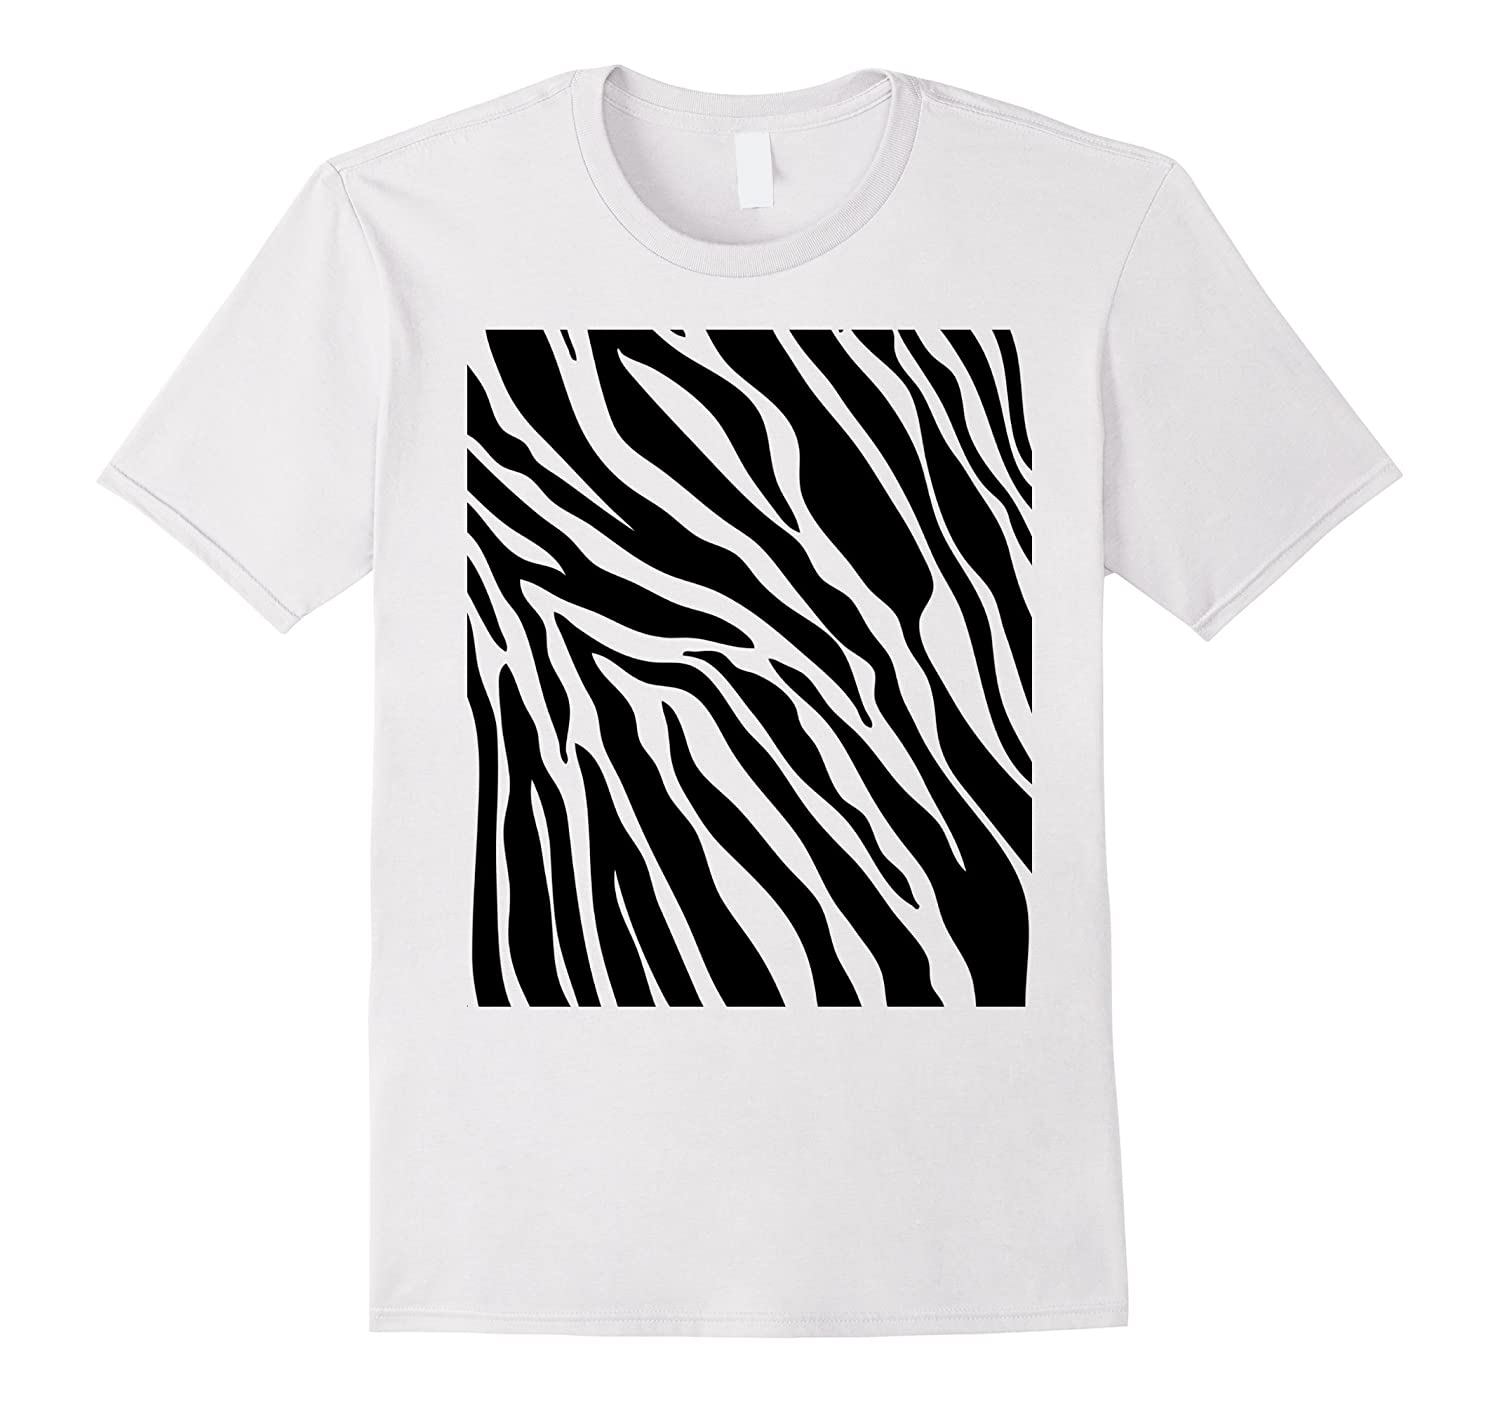 Zebra Print Shirt, Simple Halloween Costume Idea Gift-TH